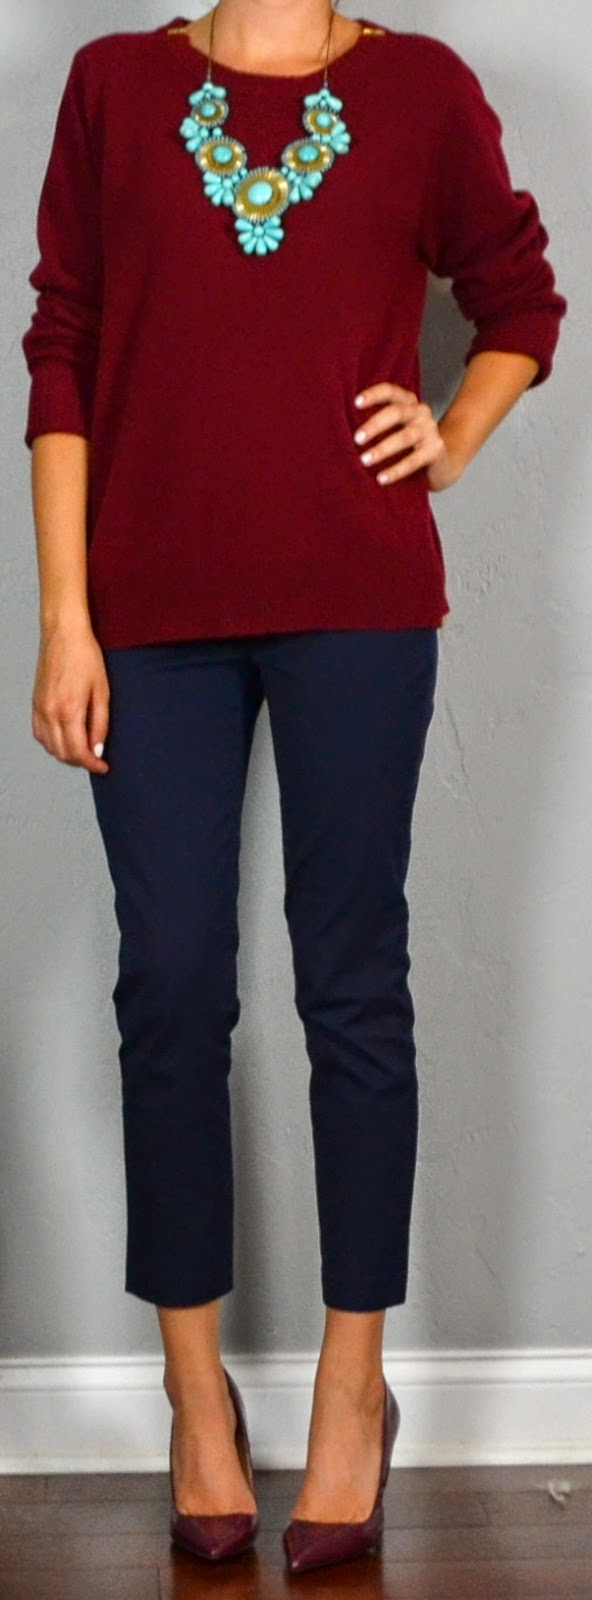 Brilliant Maroon Pants Outfit Plum Pants Burgundy Leggings Maroon Jeans Burgundy